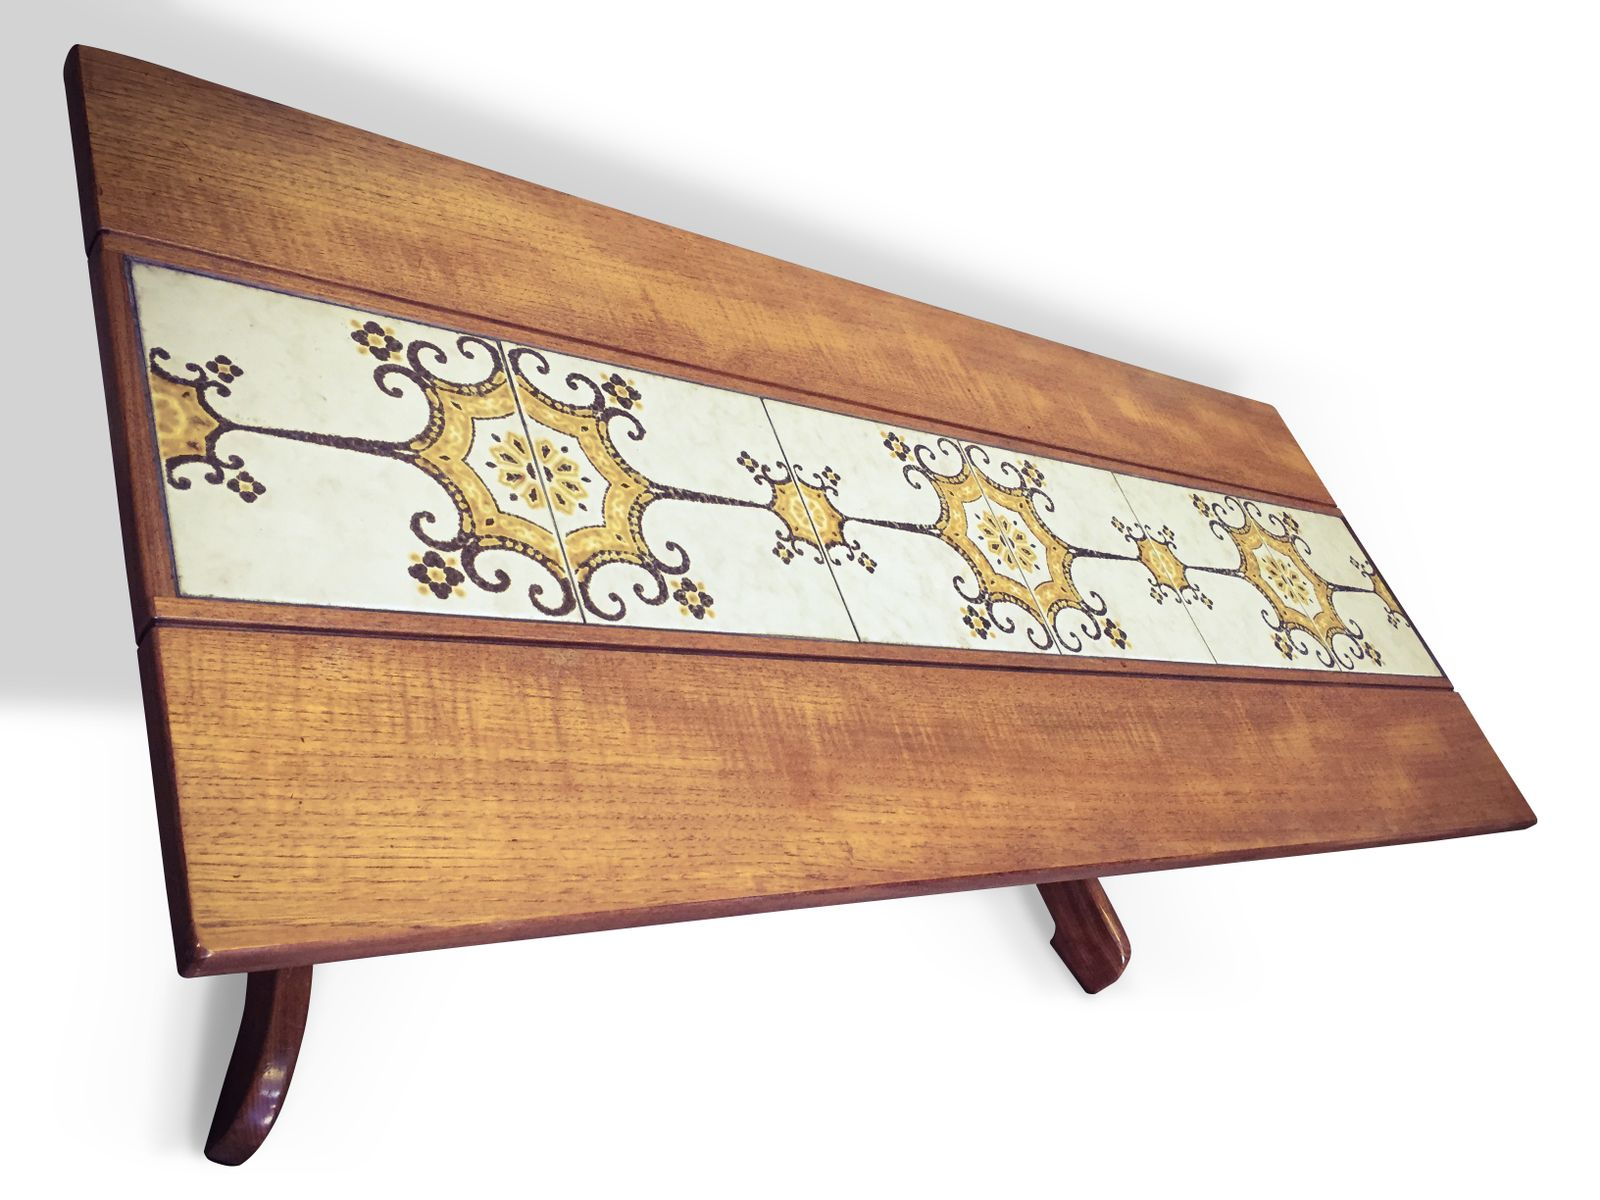 Mid Century Teak Tiled Coffee Table From G Plan 1960s For